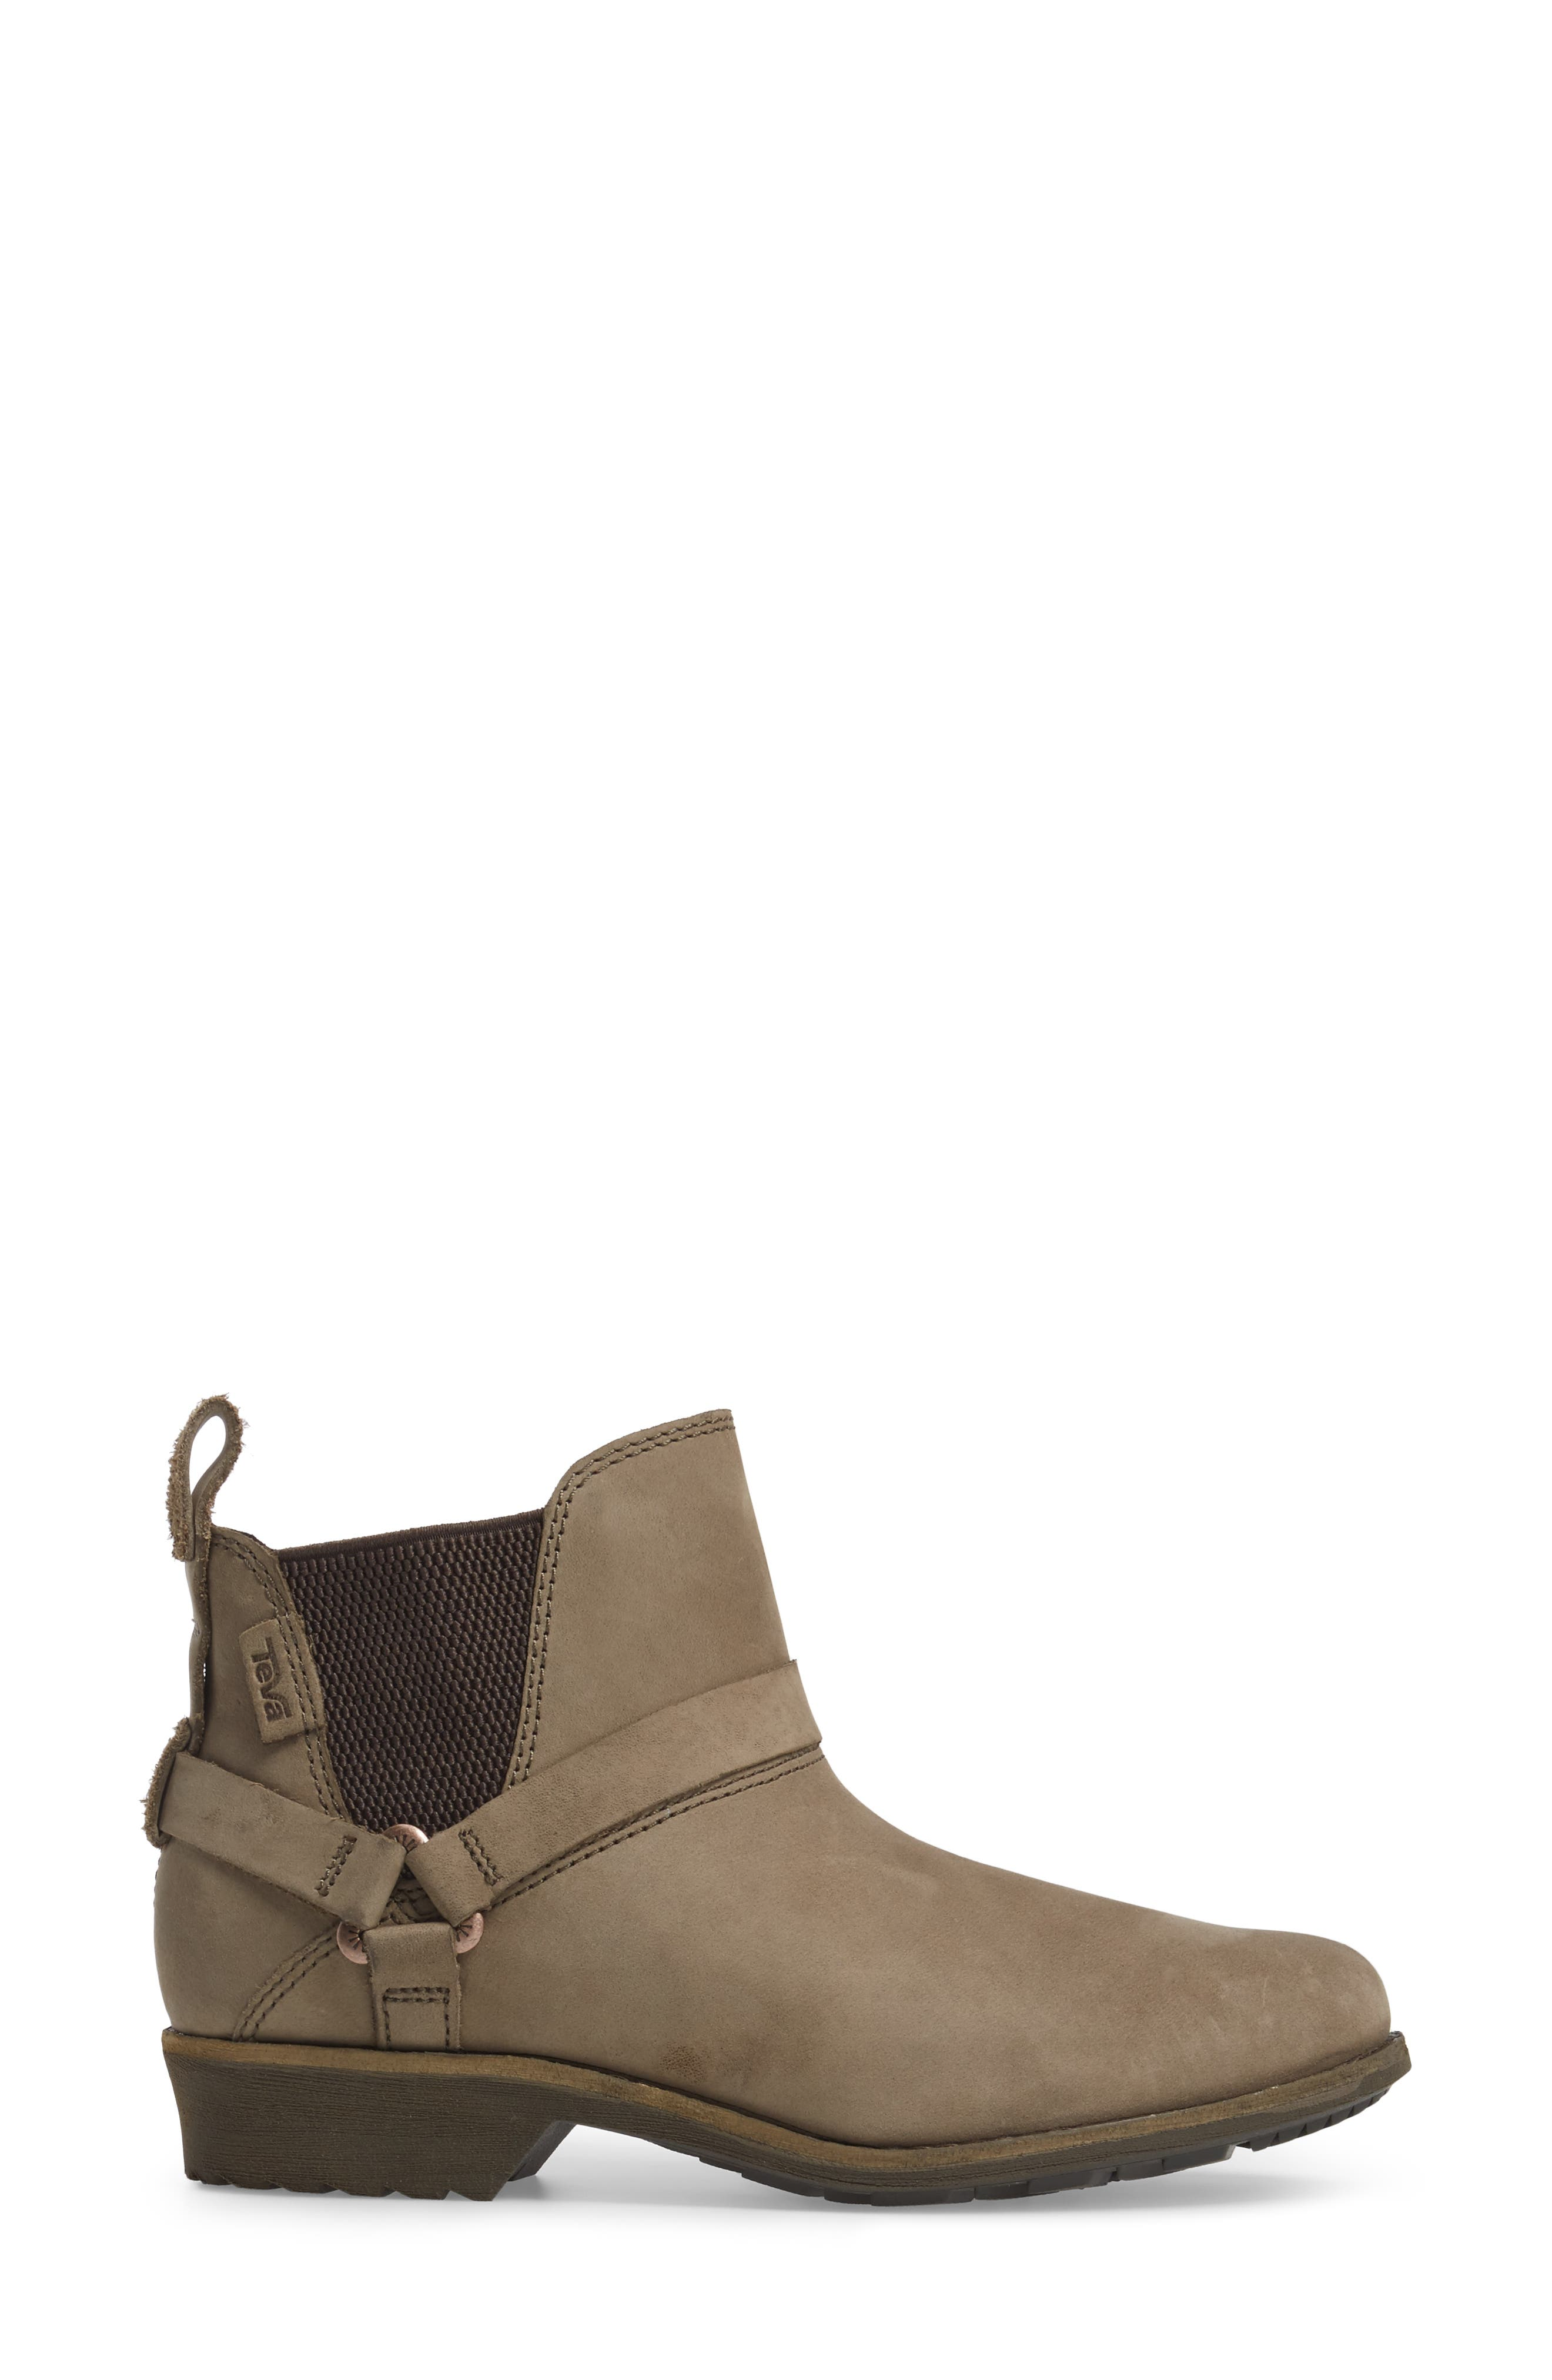 Dina La Vina Dos Waterproof Chelsea Boot,                             Alternate thumbnail 3, color,                             Bungee Cord Leather